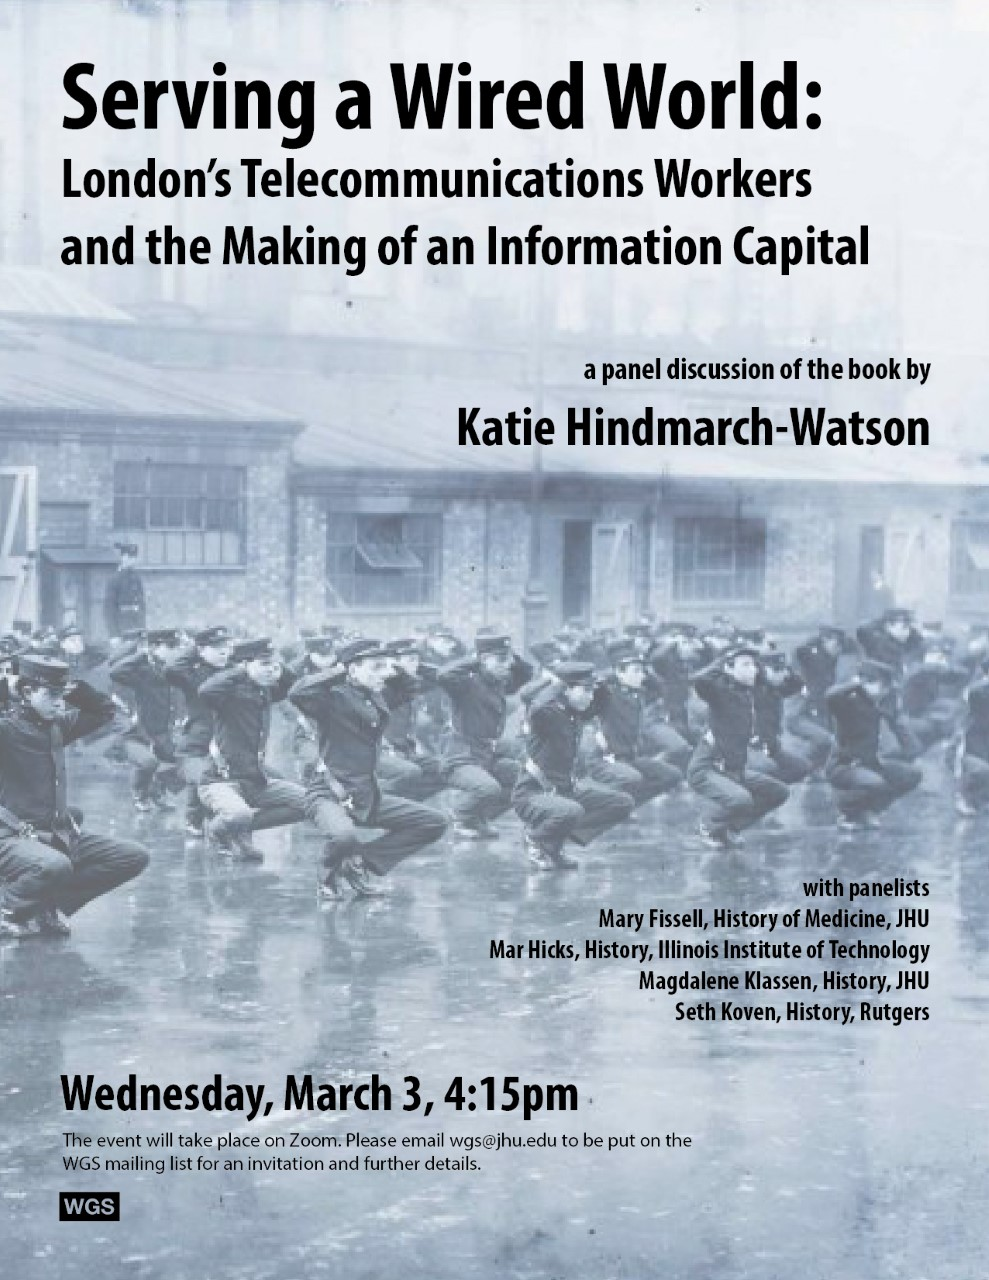 March 3, 4:15pm: A Panel Discussion of Katie Hindmarch-Watson's 'Serving a Wired World'